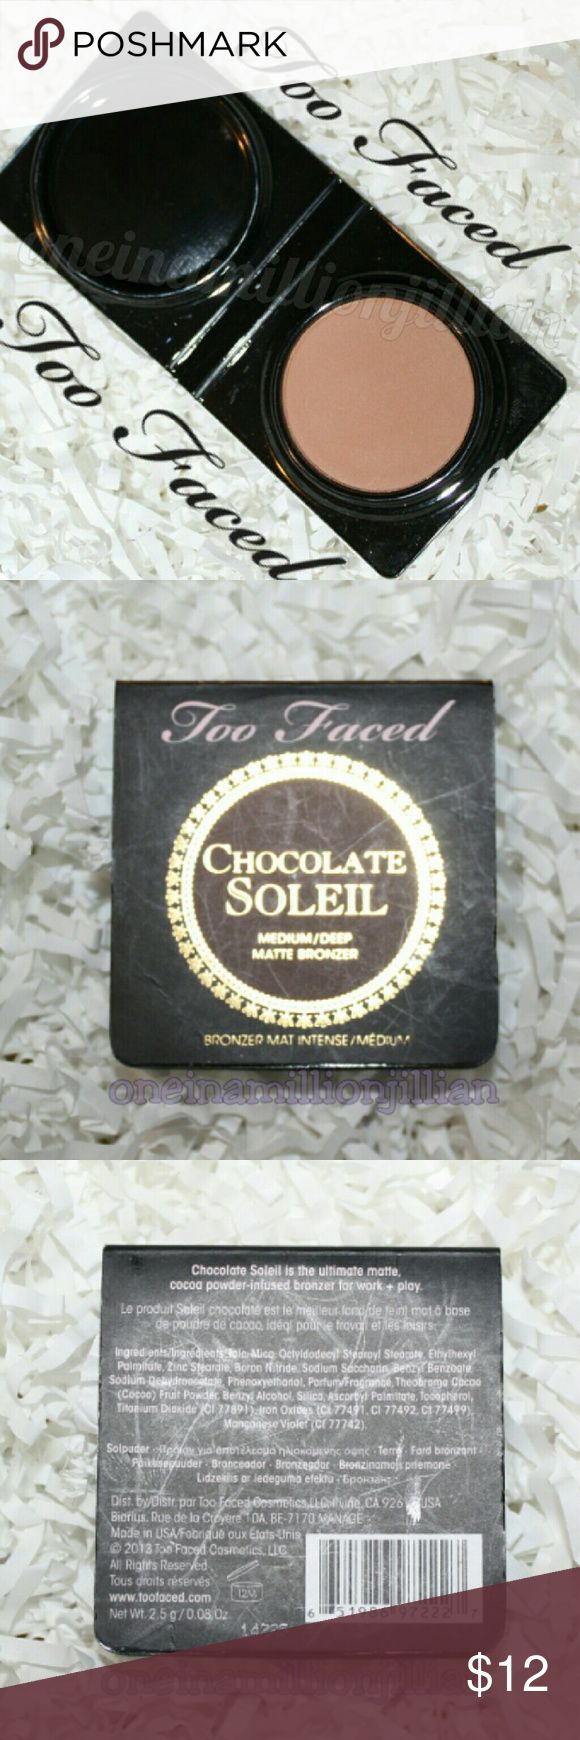 Too Faced Chocolate Soleil Matte Bronzing Powder New - Never Used  .08oz travel sz - Authentic  Color: Chocolate (medium/deep)  Too Faced Chocolate Soleil Matte Bronzer makes getting glam & tan downright delicious. It combines the natural, therapeutic effects of real cocoa powder with their signature bronzing pigments, creating a unique matte bronzer that neutralizes red & evens out & enhances all skintones. The complexion is left with a flawless finish, a gorgeous radiance & a subtly sweet…